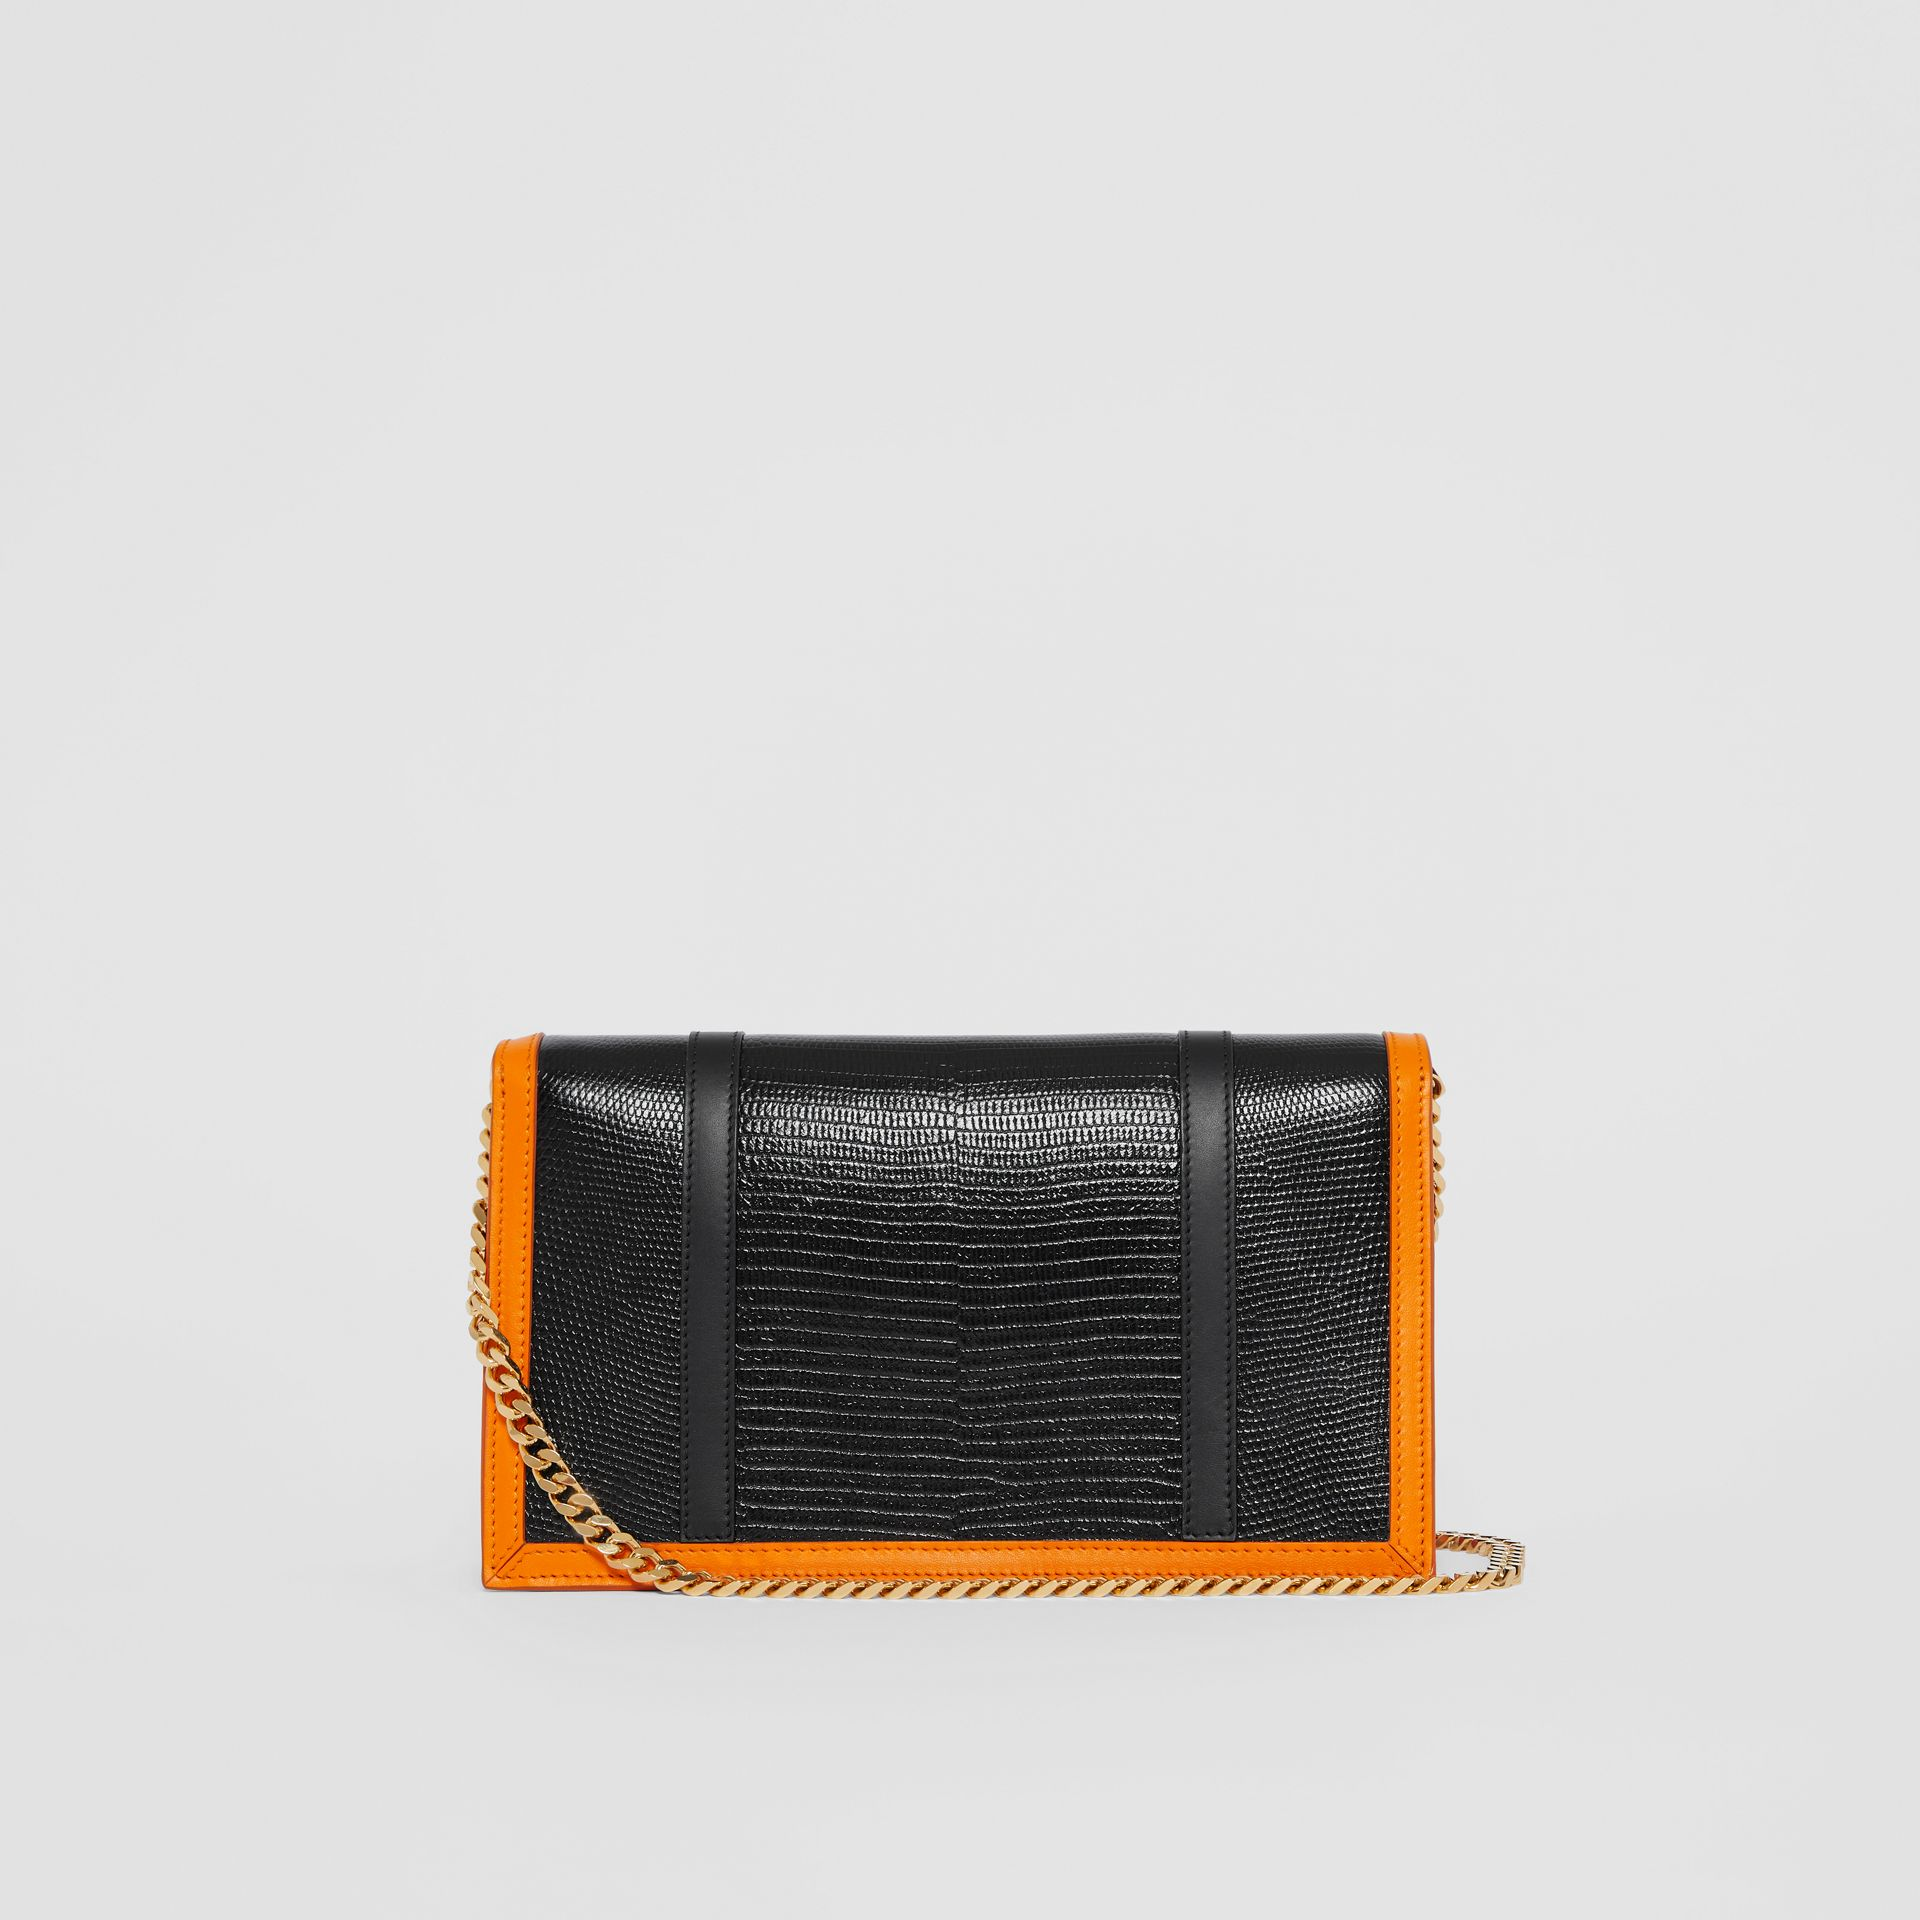 Small Embossed Leather TB Envelope Clutch in Tan - Women | Burberry - gallery image 6